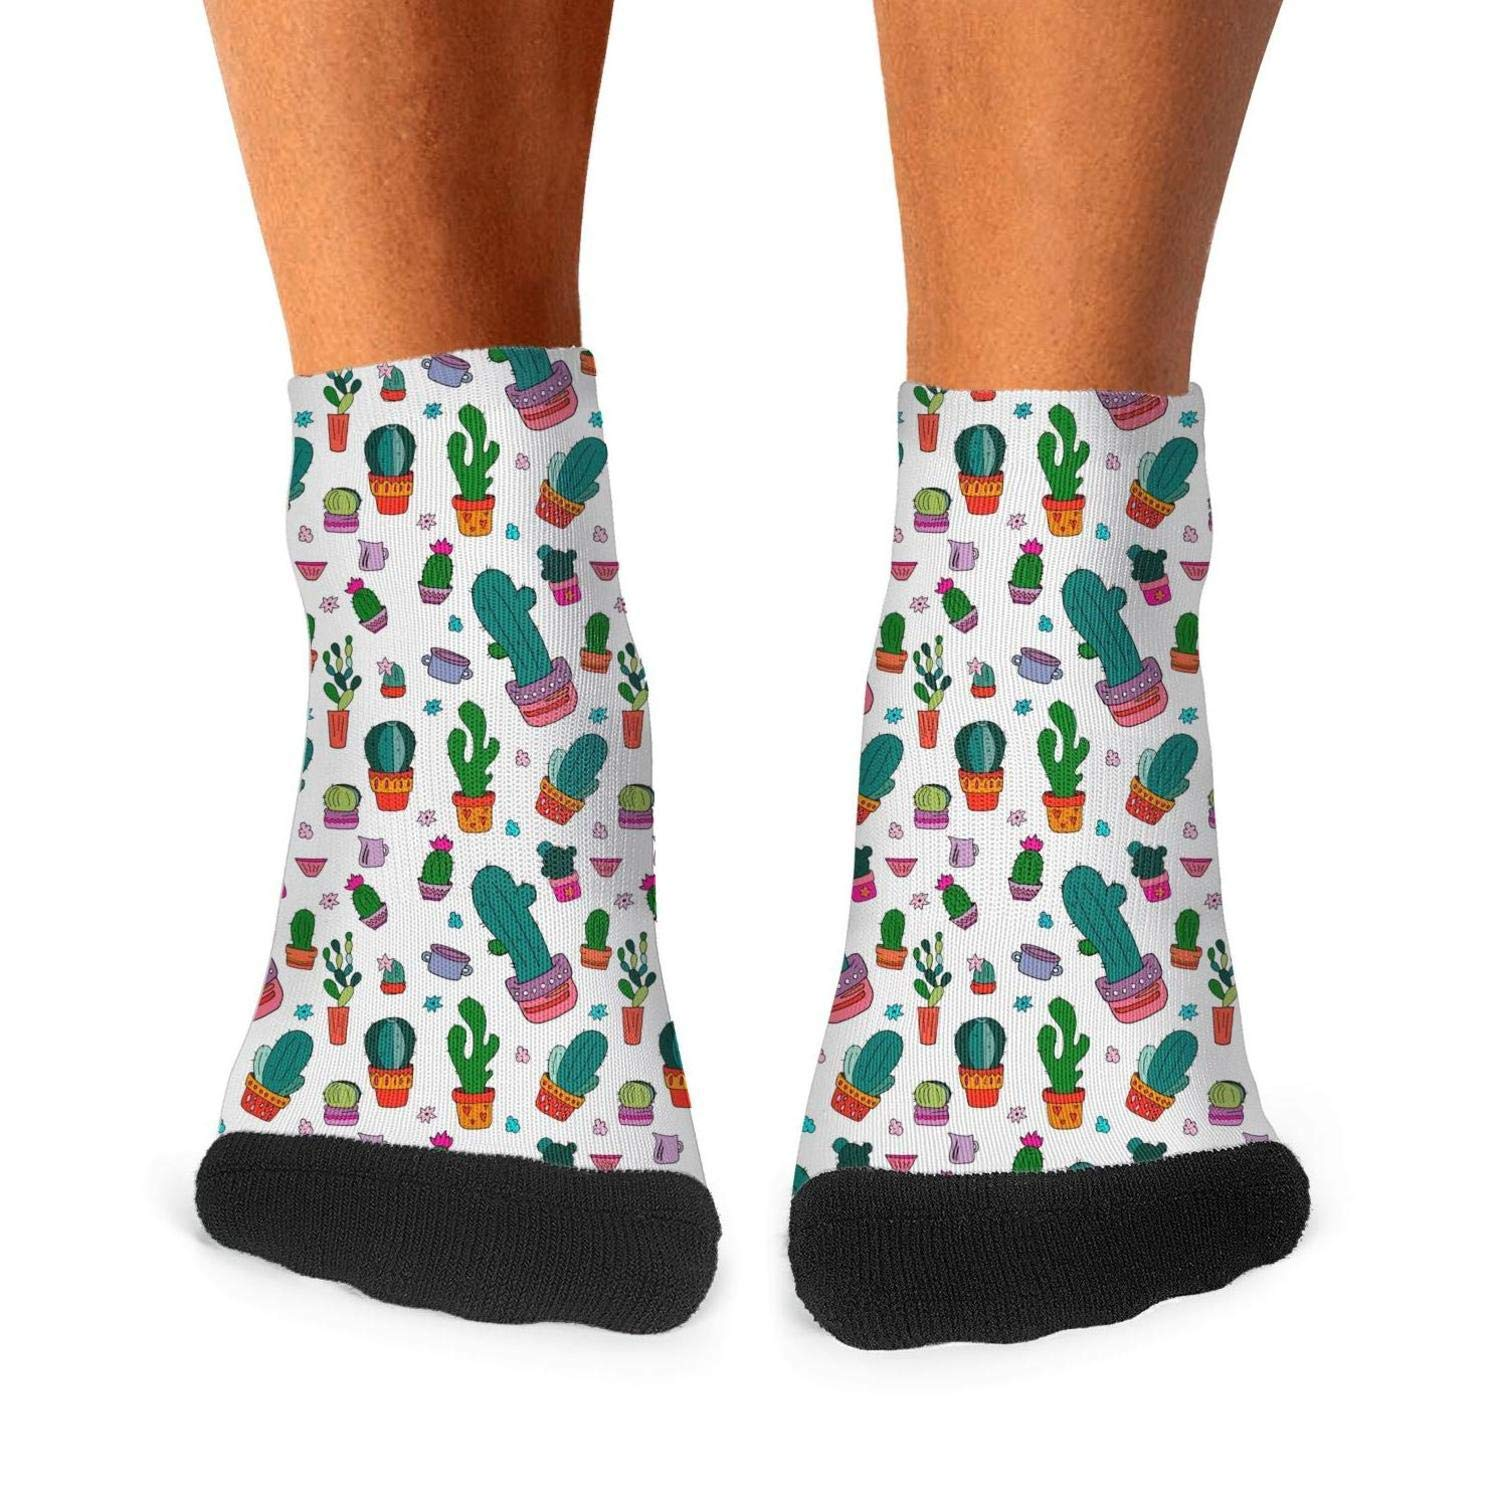 Mens athletic low cut Ankle sock Amusing Cactus Succulent Plants Short Sports Sock